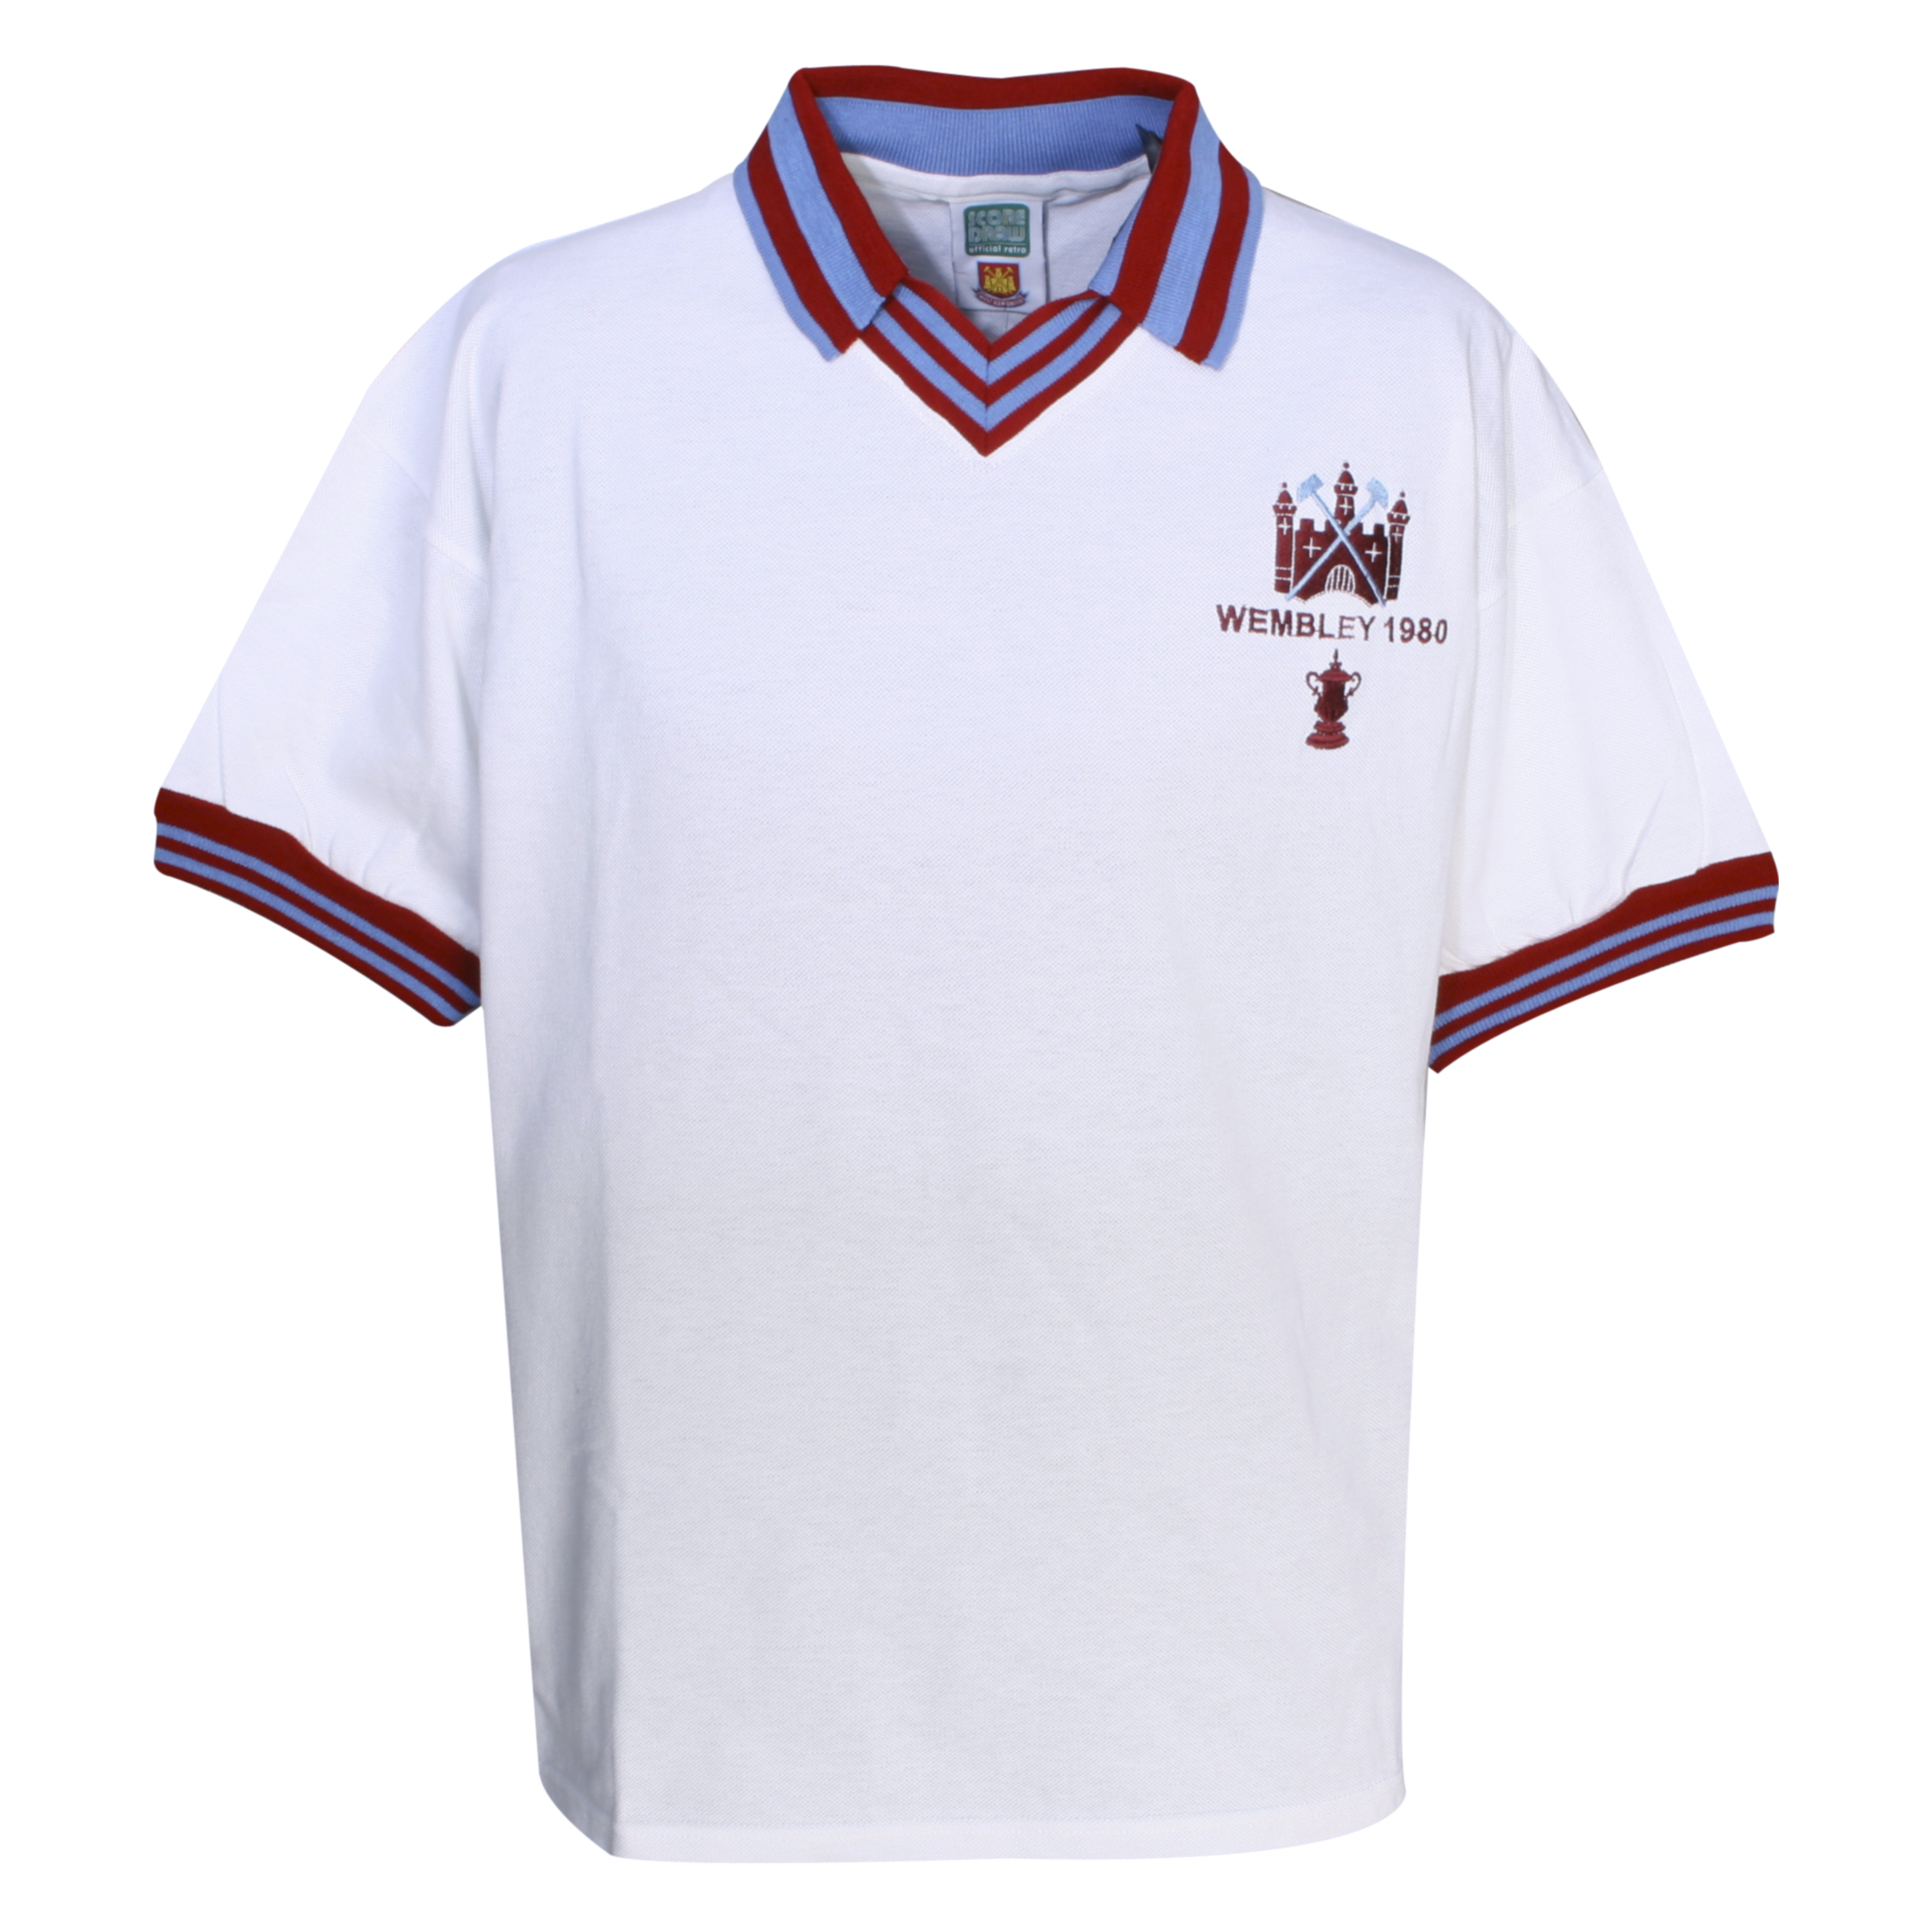 West Ham United 1980 FA Cup Final Shirt  White